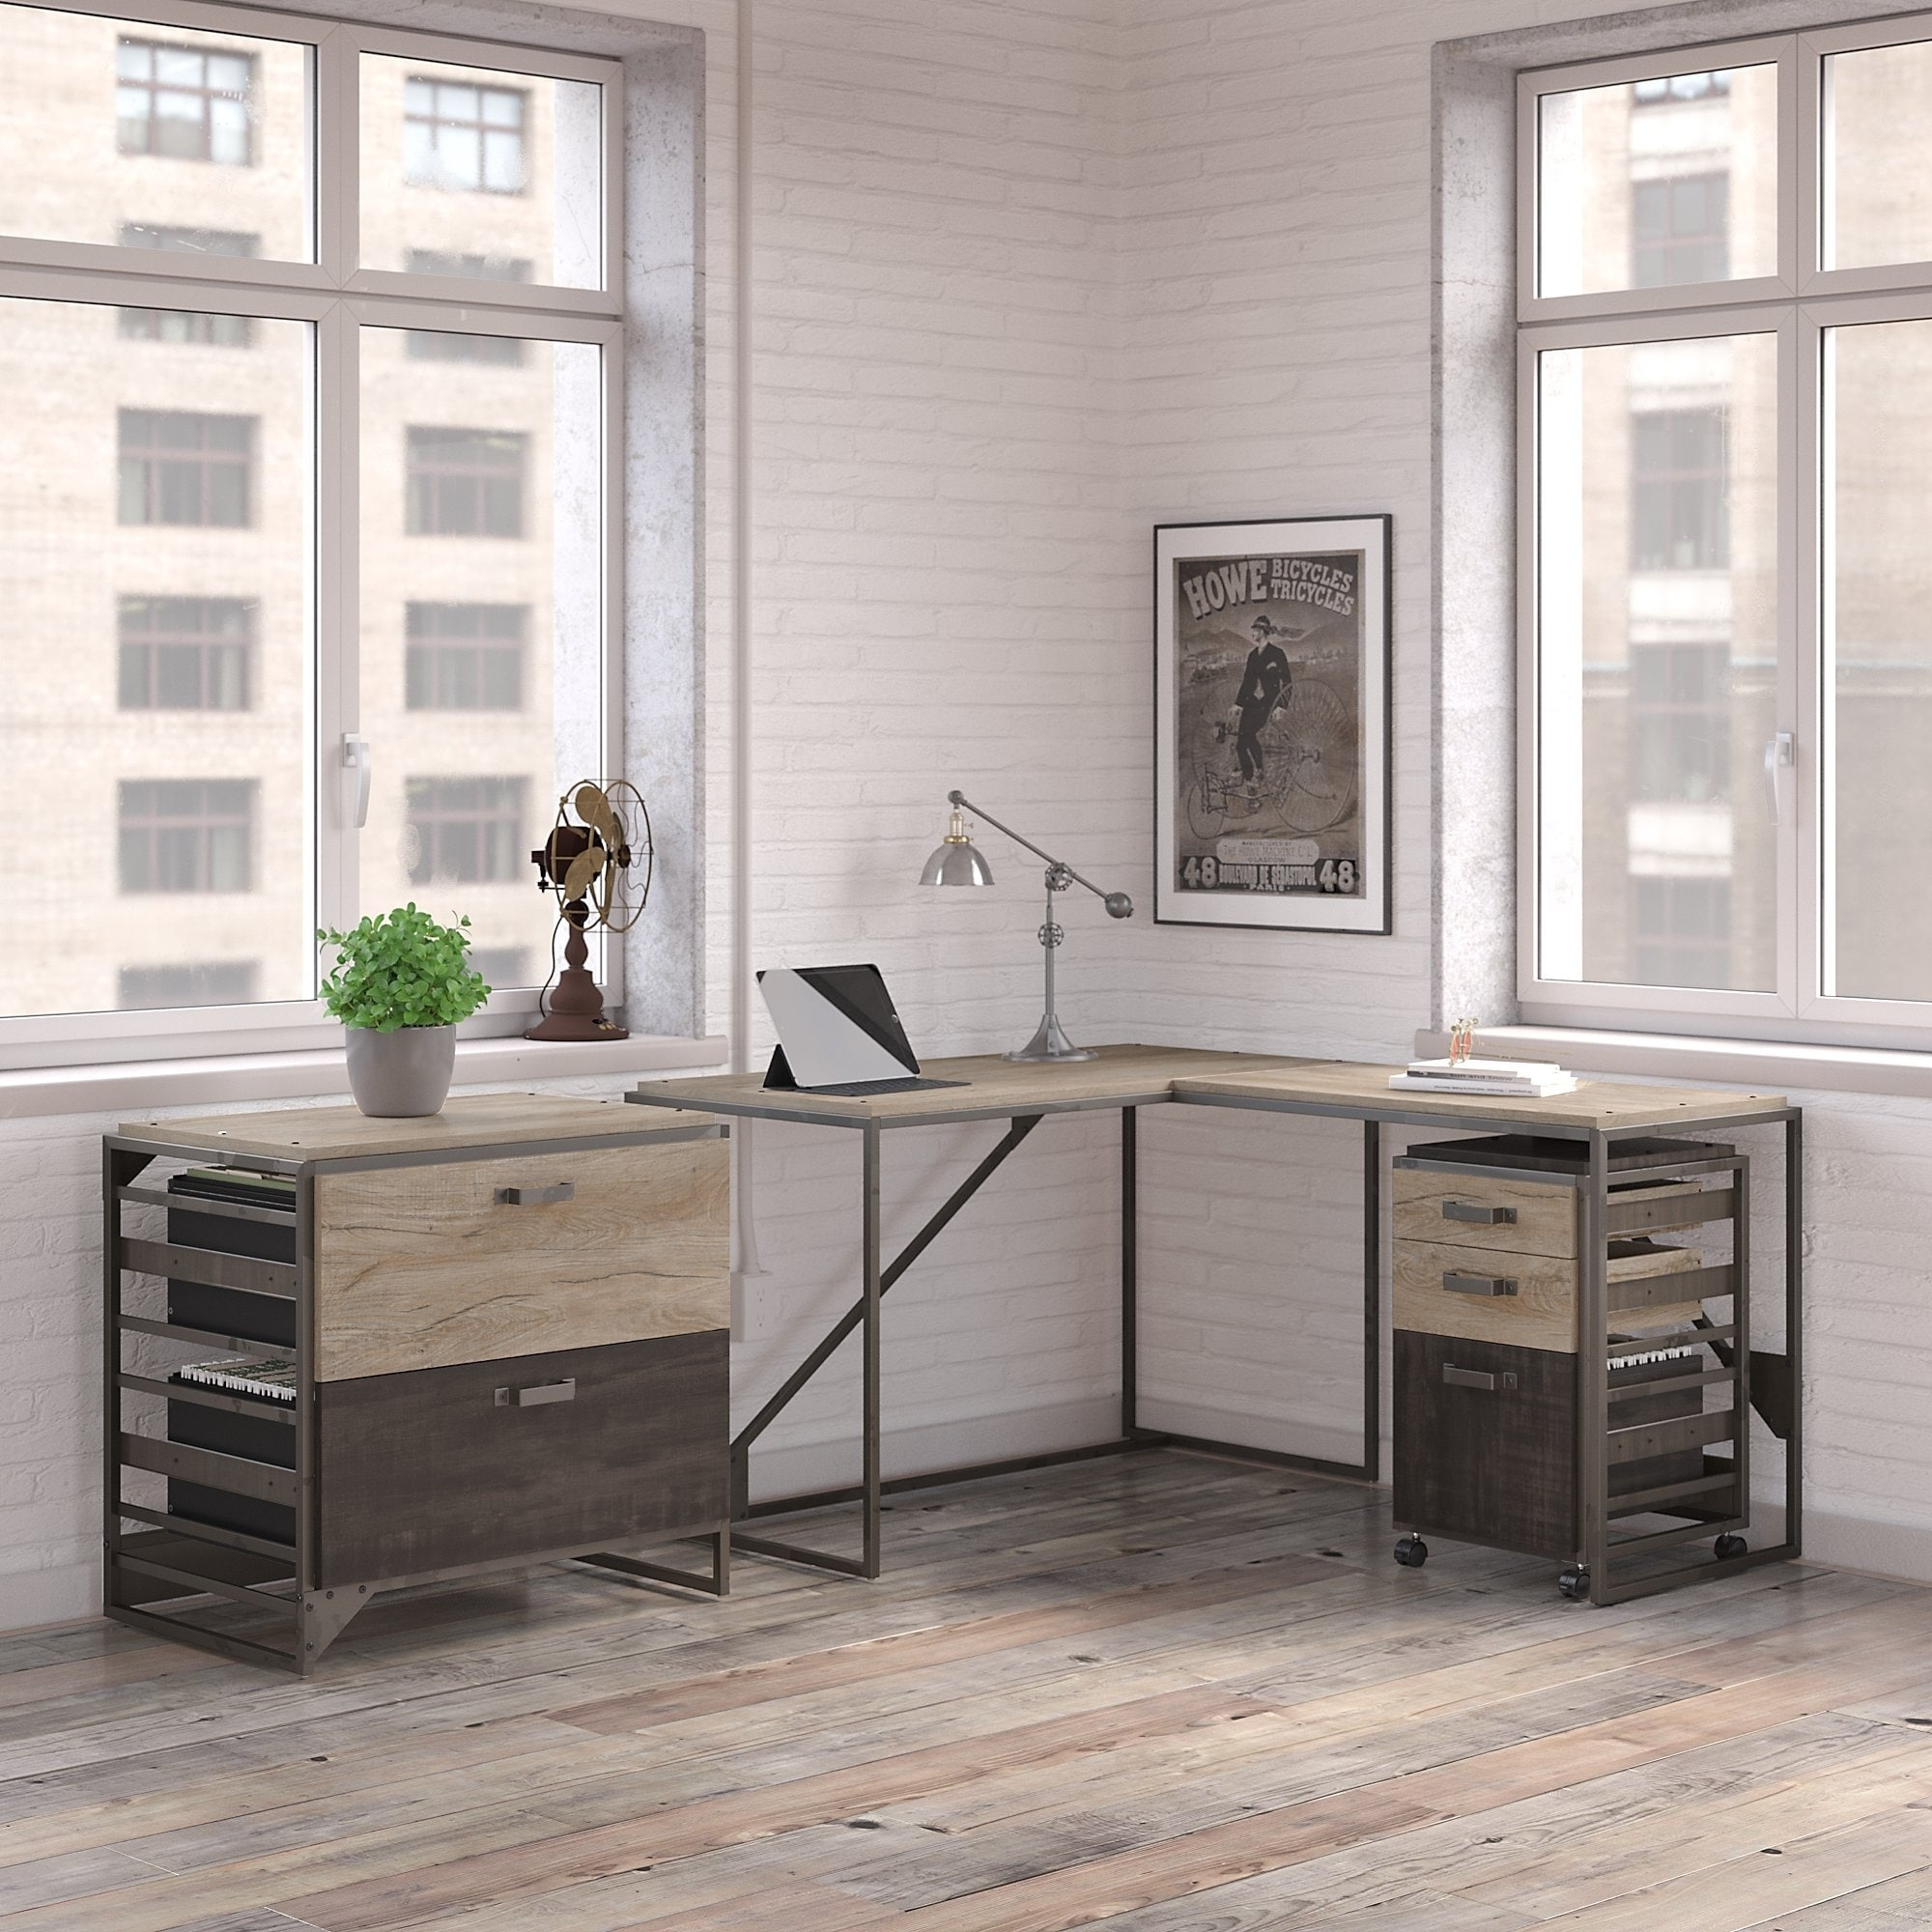 c colorful custom cabinet it filing home for town yourself bedford do from woodworking projects pin with ana corner desk beginners white f